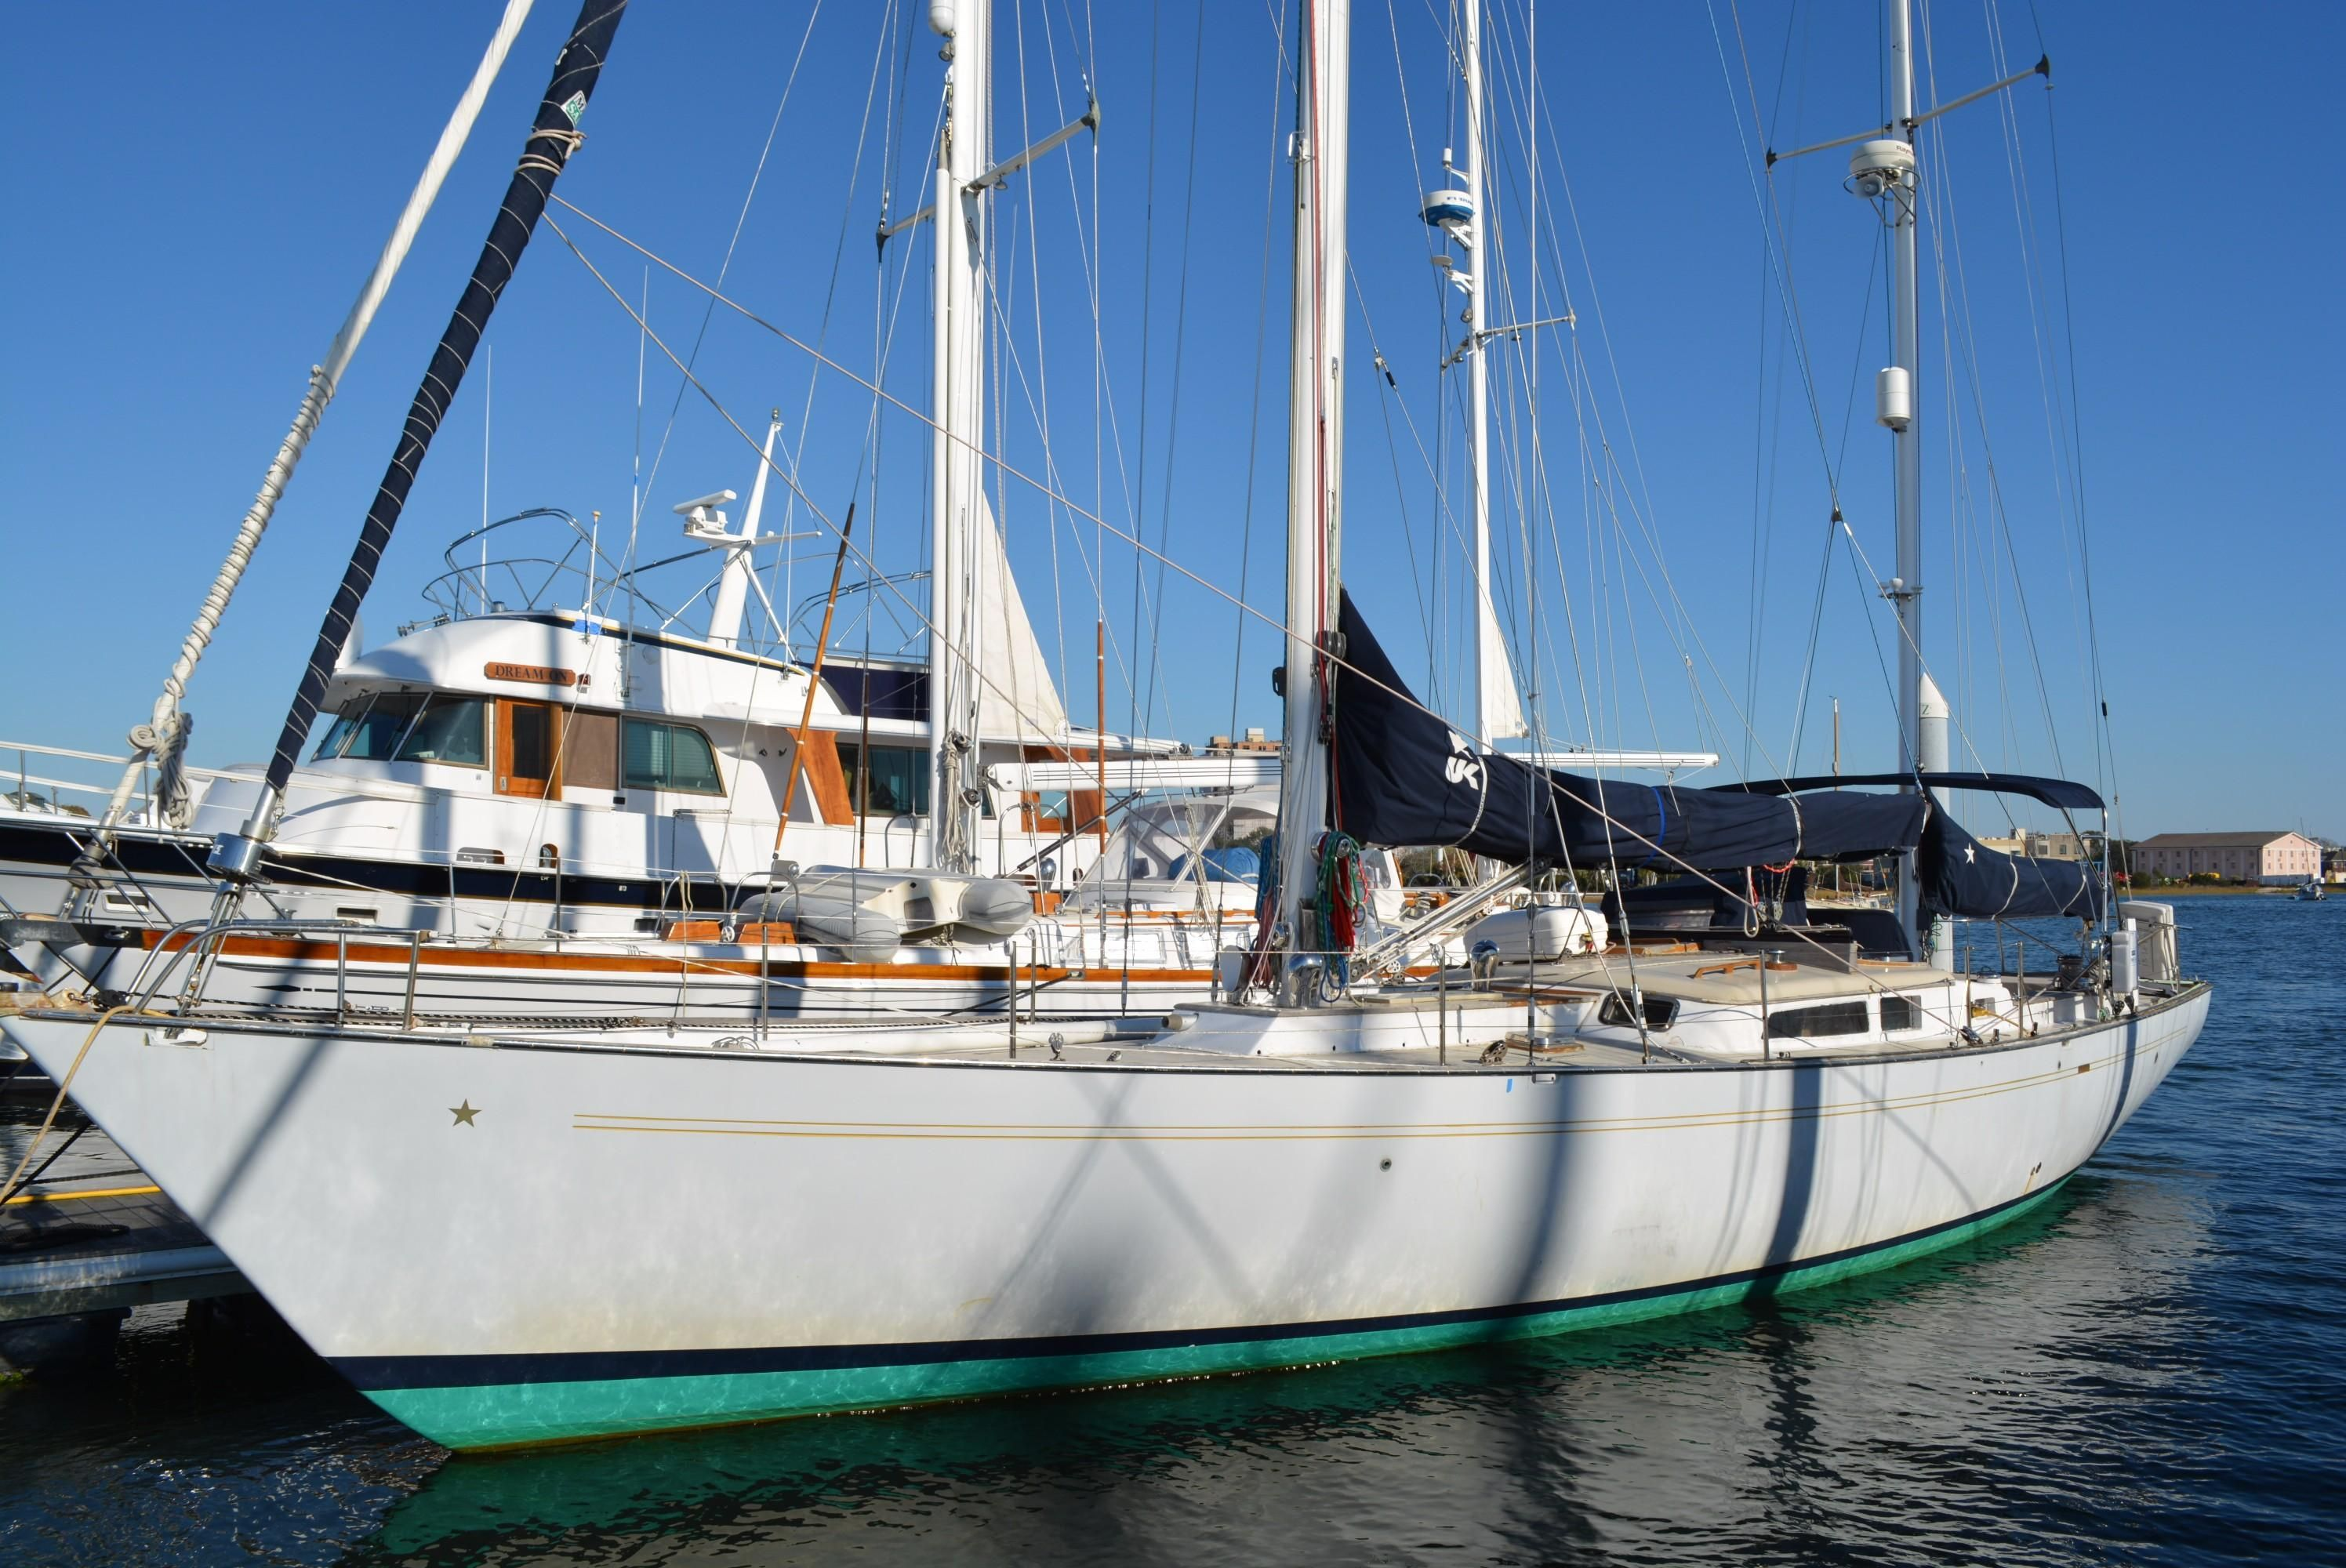 1972 custom aeromarine 50 sail boat for sale www for 50 ft motor yachts for sale